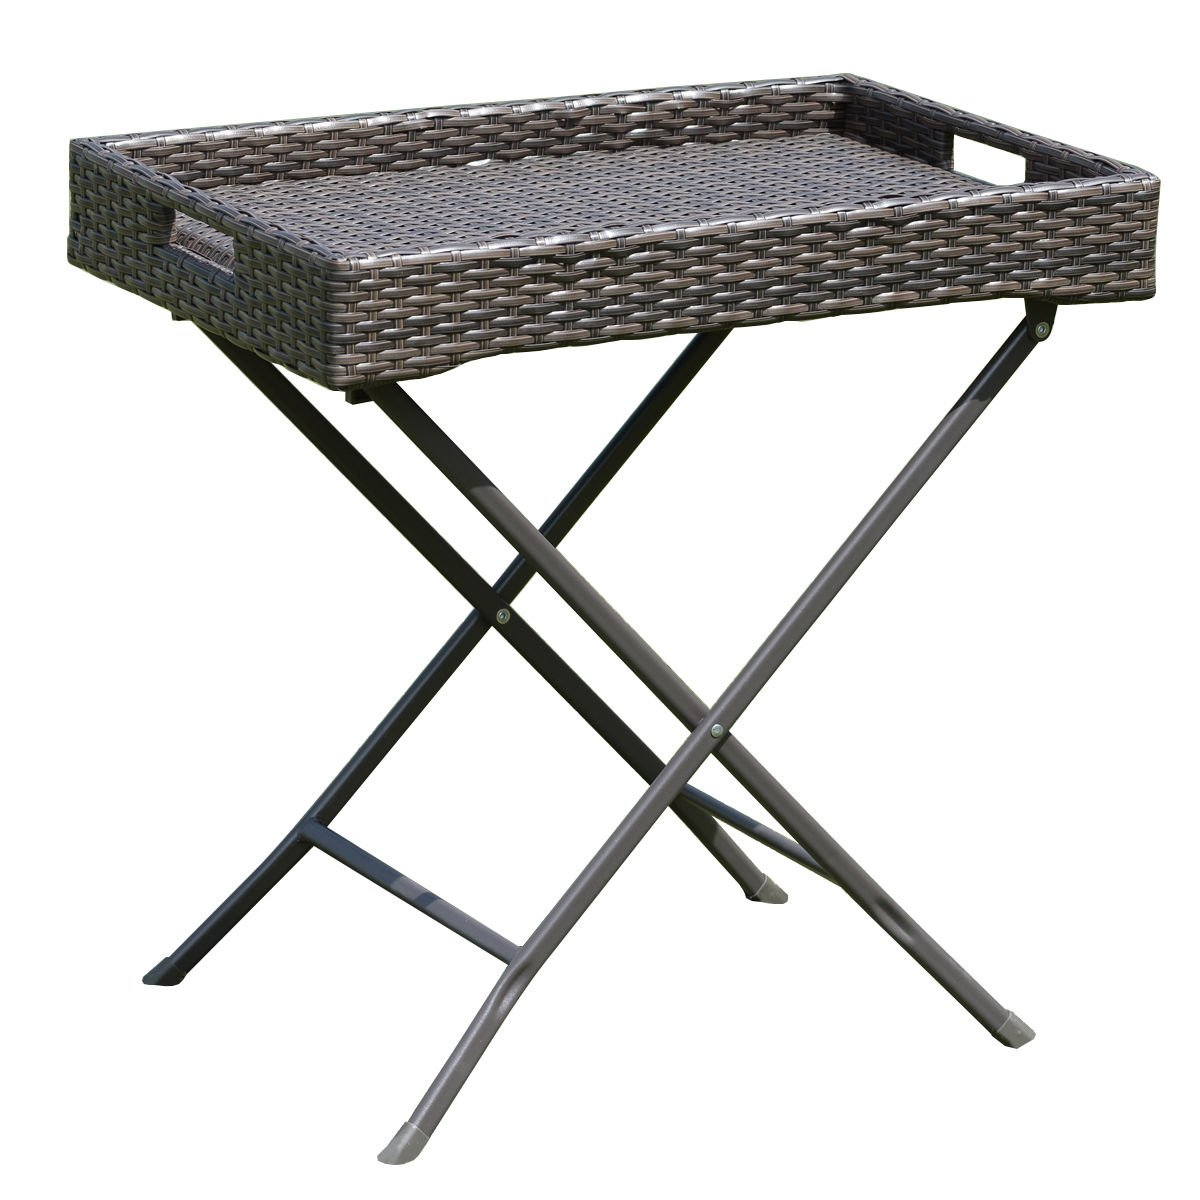 Tangkula Wicker Table Outdoor Patio Wicker Rattan Sofa Side Tray Table Display Stand